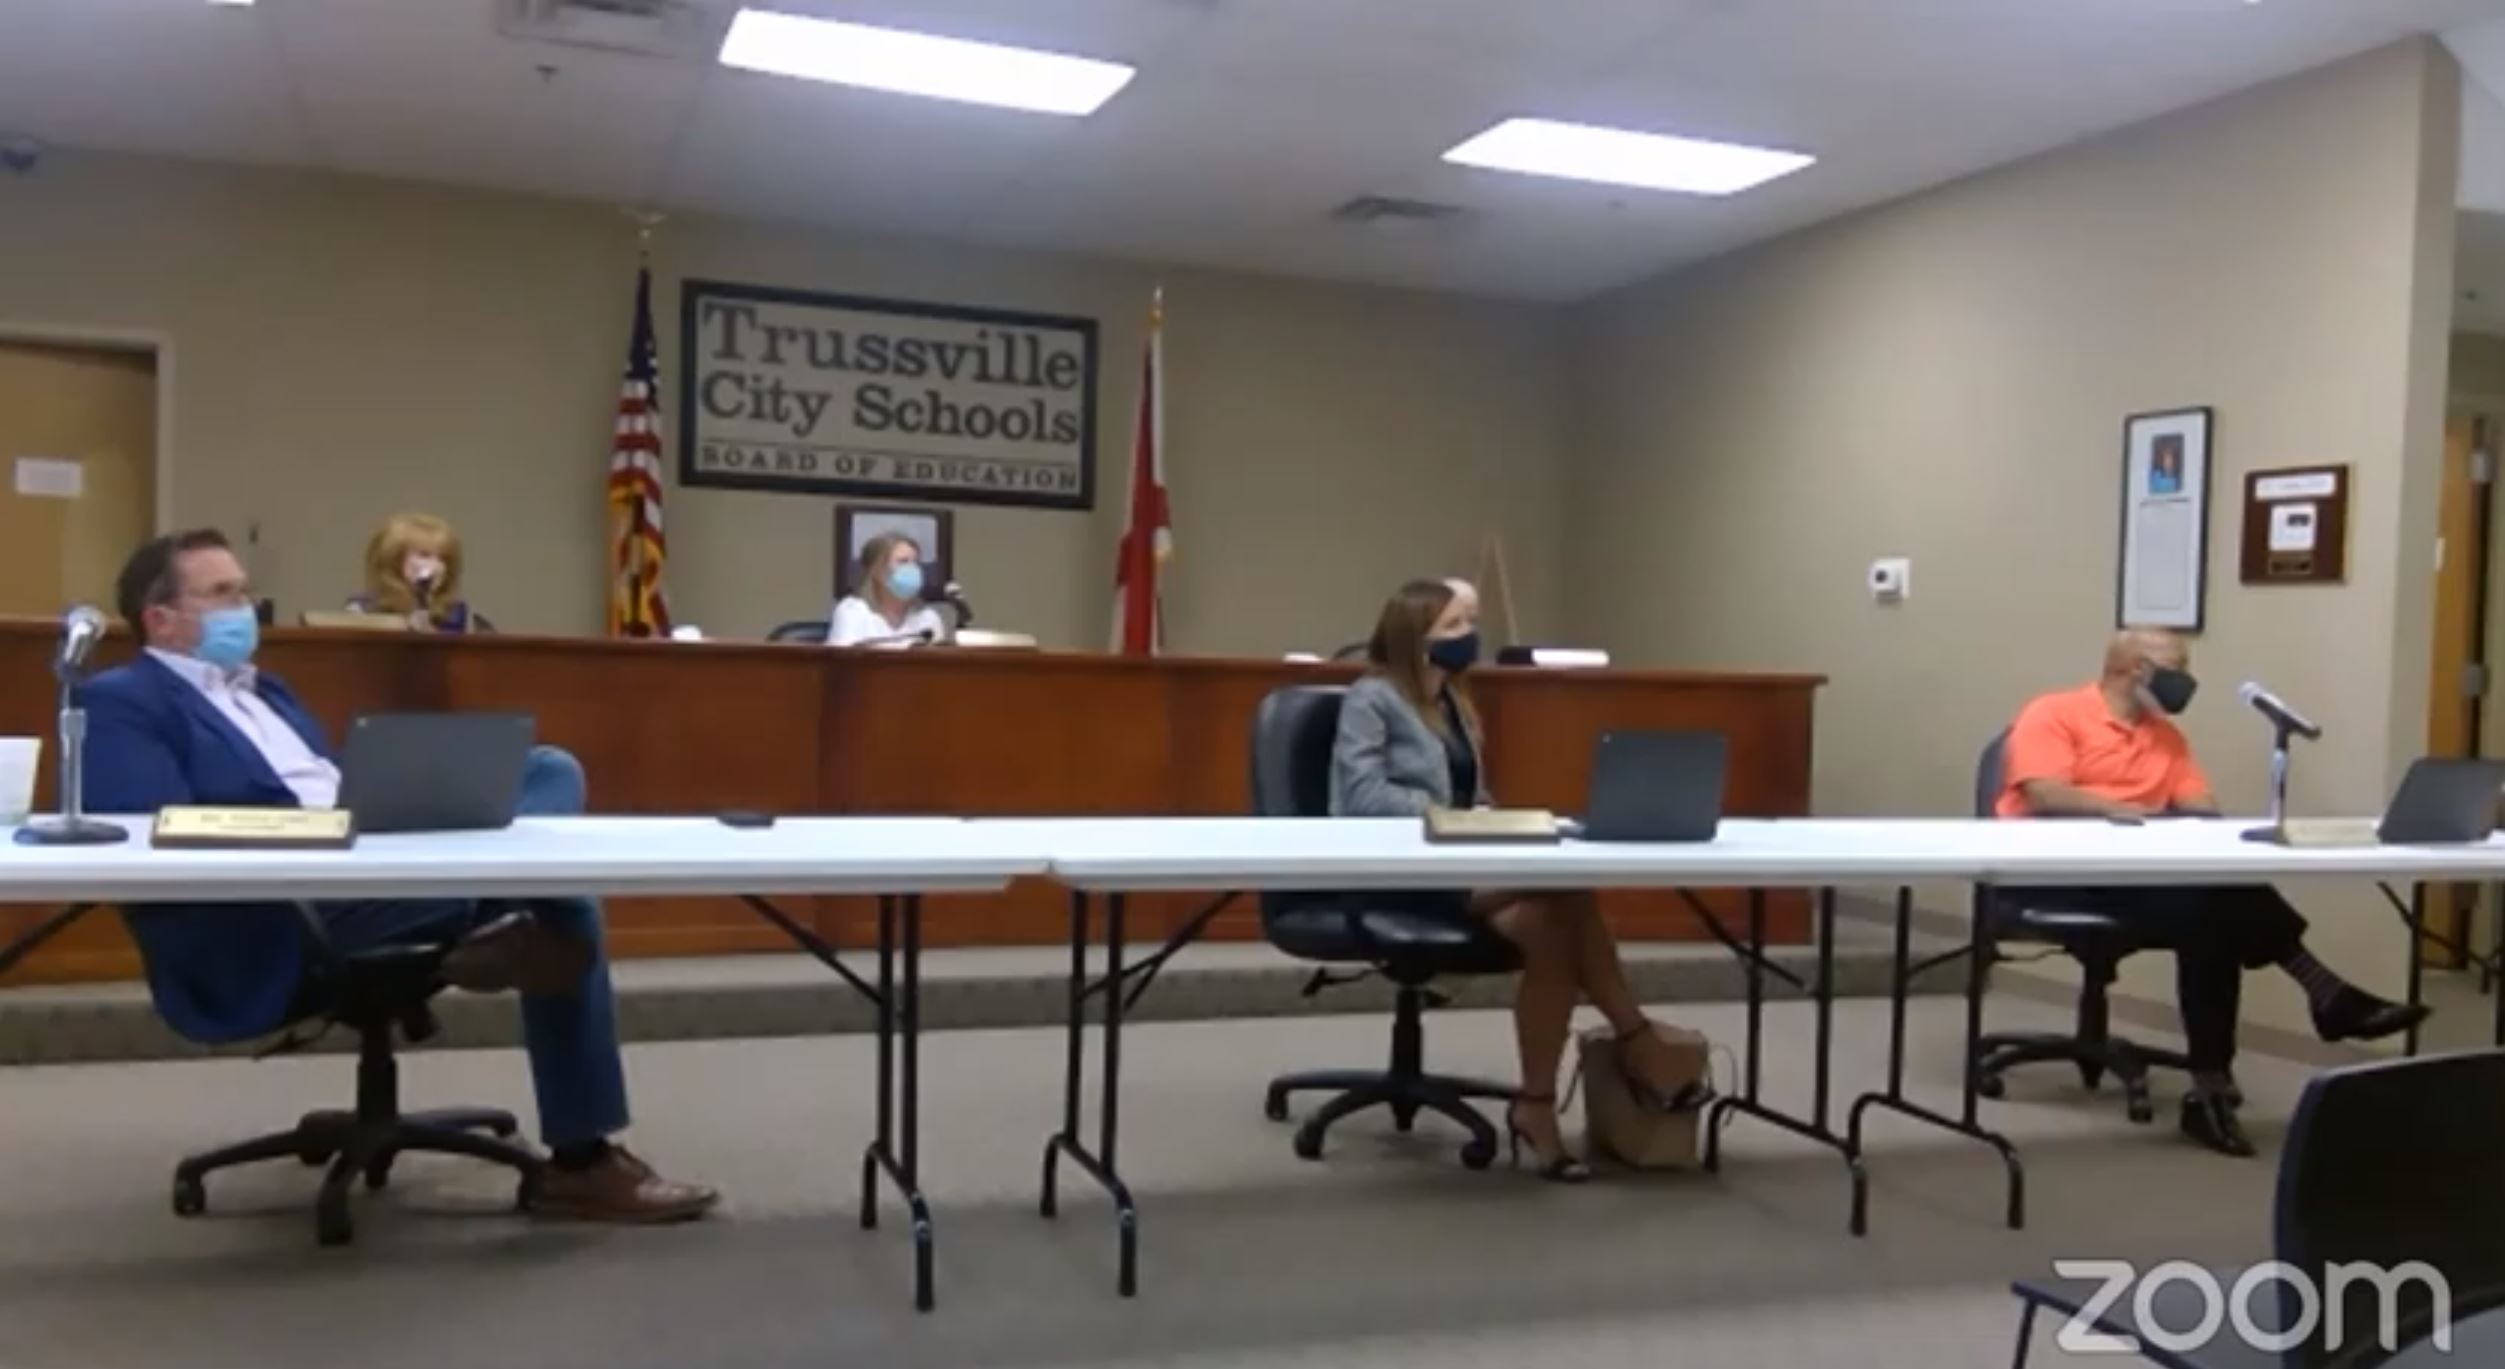 TCS Board of Education meeting streamed live online, Superintendent gives COVID-19 update